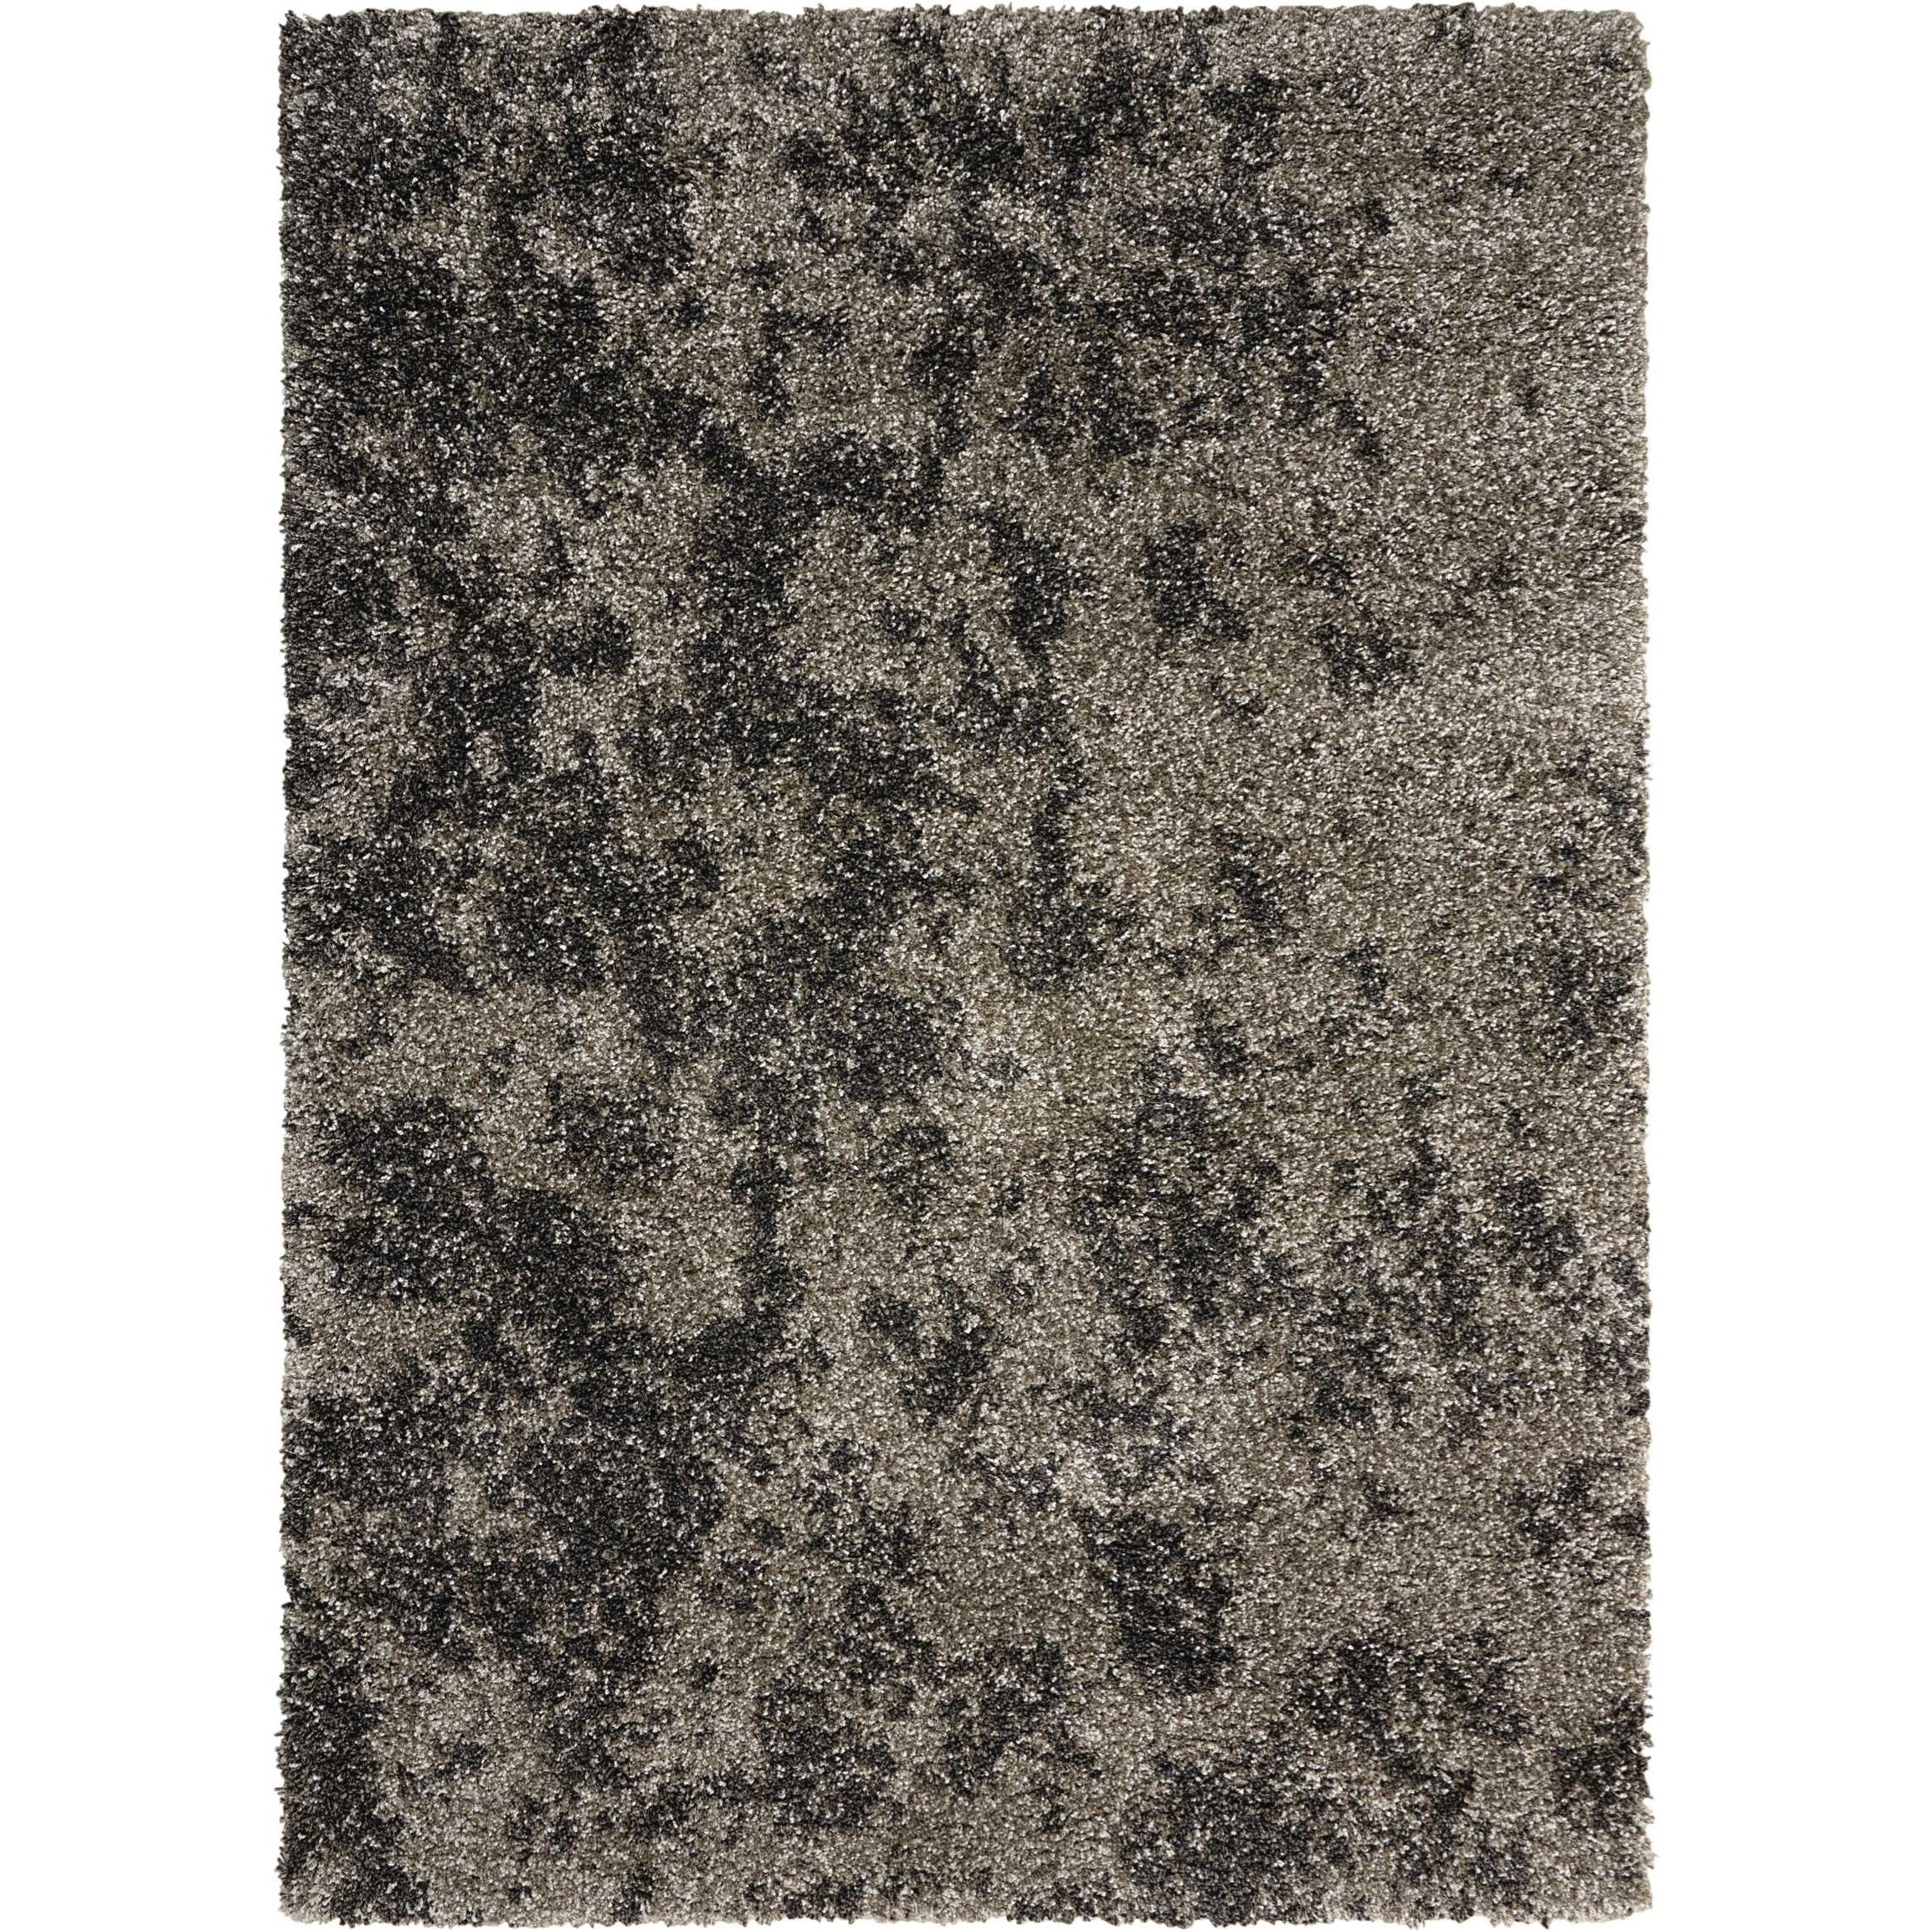 Amore Amore AMOR4 Grey 5'x8' Area Rug by Nourison at Home Collections Furniture